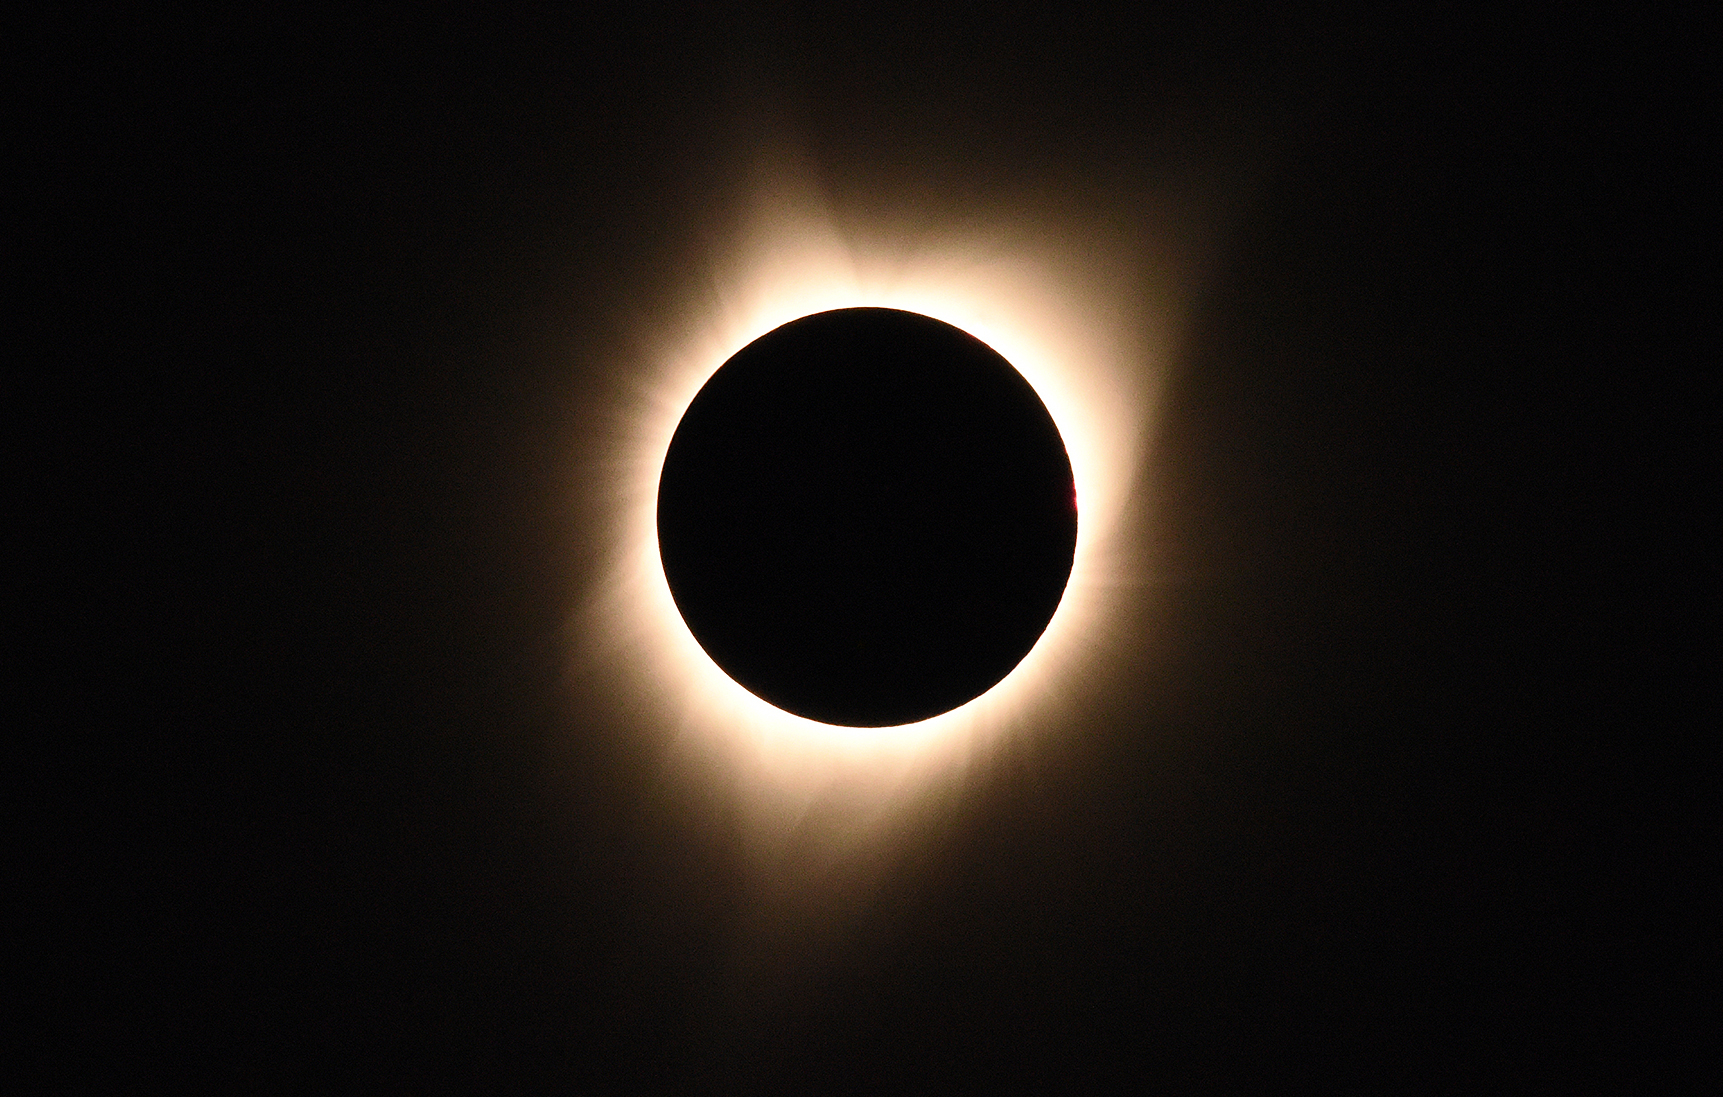 The sun's corona is visible as the moon passes in front of the sun during a total solar eclipse at Big Summit Prairie ranch in Oregon's Ochoco National Forest near the city of Mitchell on August 21, 2017.